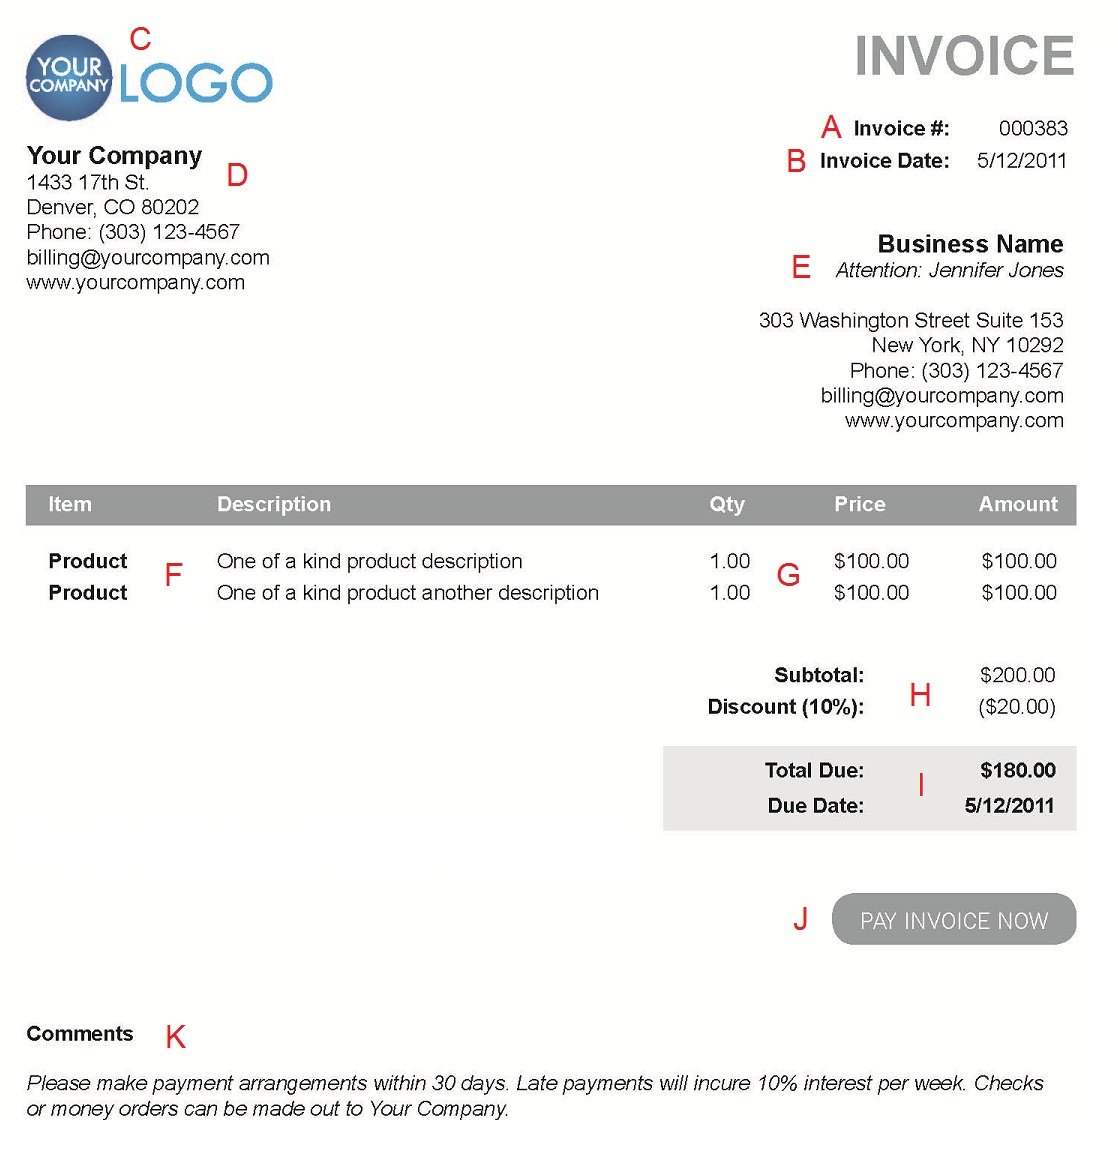 Coolmathgamesus  Prepossessing The  Different Sections Of An Electronic Payment Invoice With Excellent A  With Awesome Purchase Order And Invoice Process Also Sale Invoices In Addition How To Prepare Invoice And Credit Invoice Definition As Well As What Invoice Additionally Invoice Self Employed From Paysimplecom With Coolmathgamesus  Excellent The  Different Sections Of An Electronic Payment Invoice With Awesome A  And Prepossessing Purchase Order And Invoice Process Also Sale Invoices In Addition How To Prepare Invoice From Paysimplecom